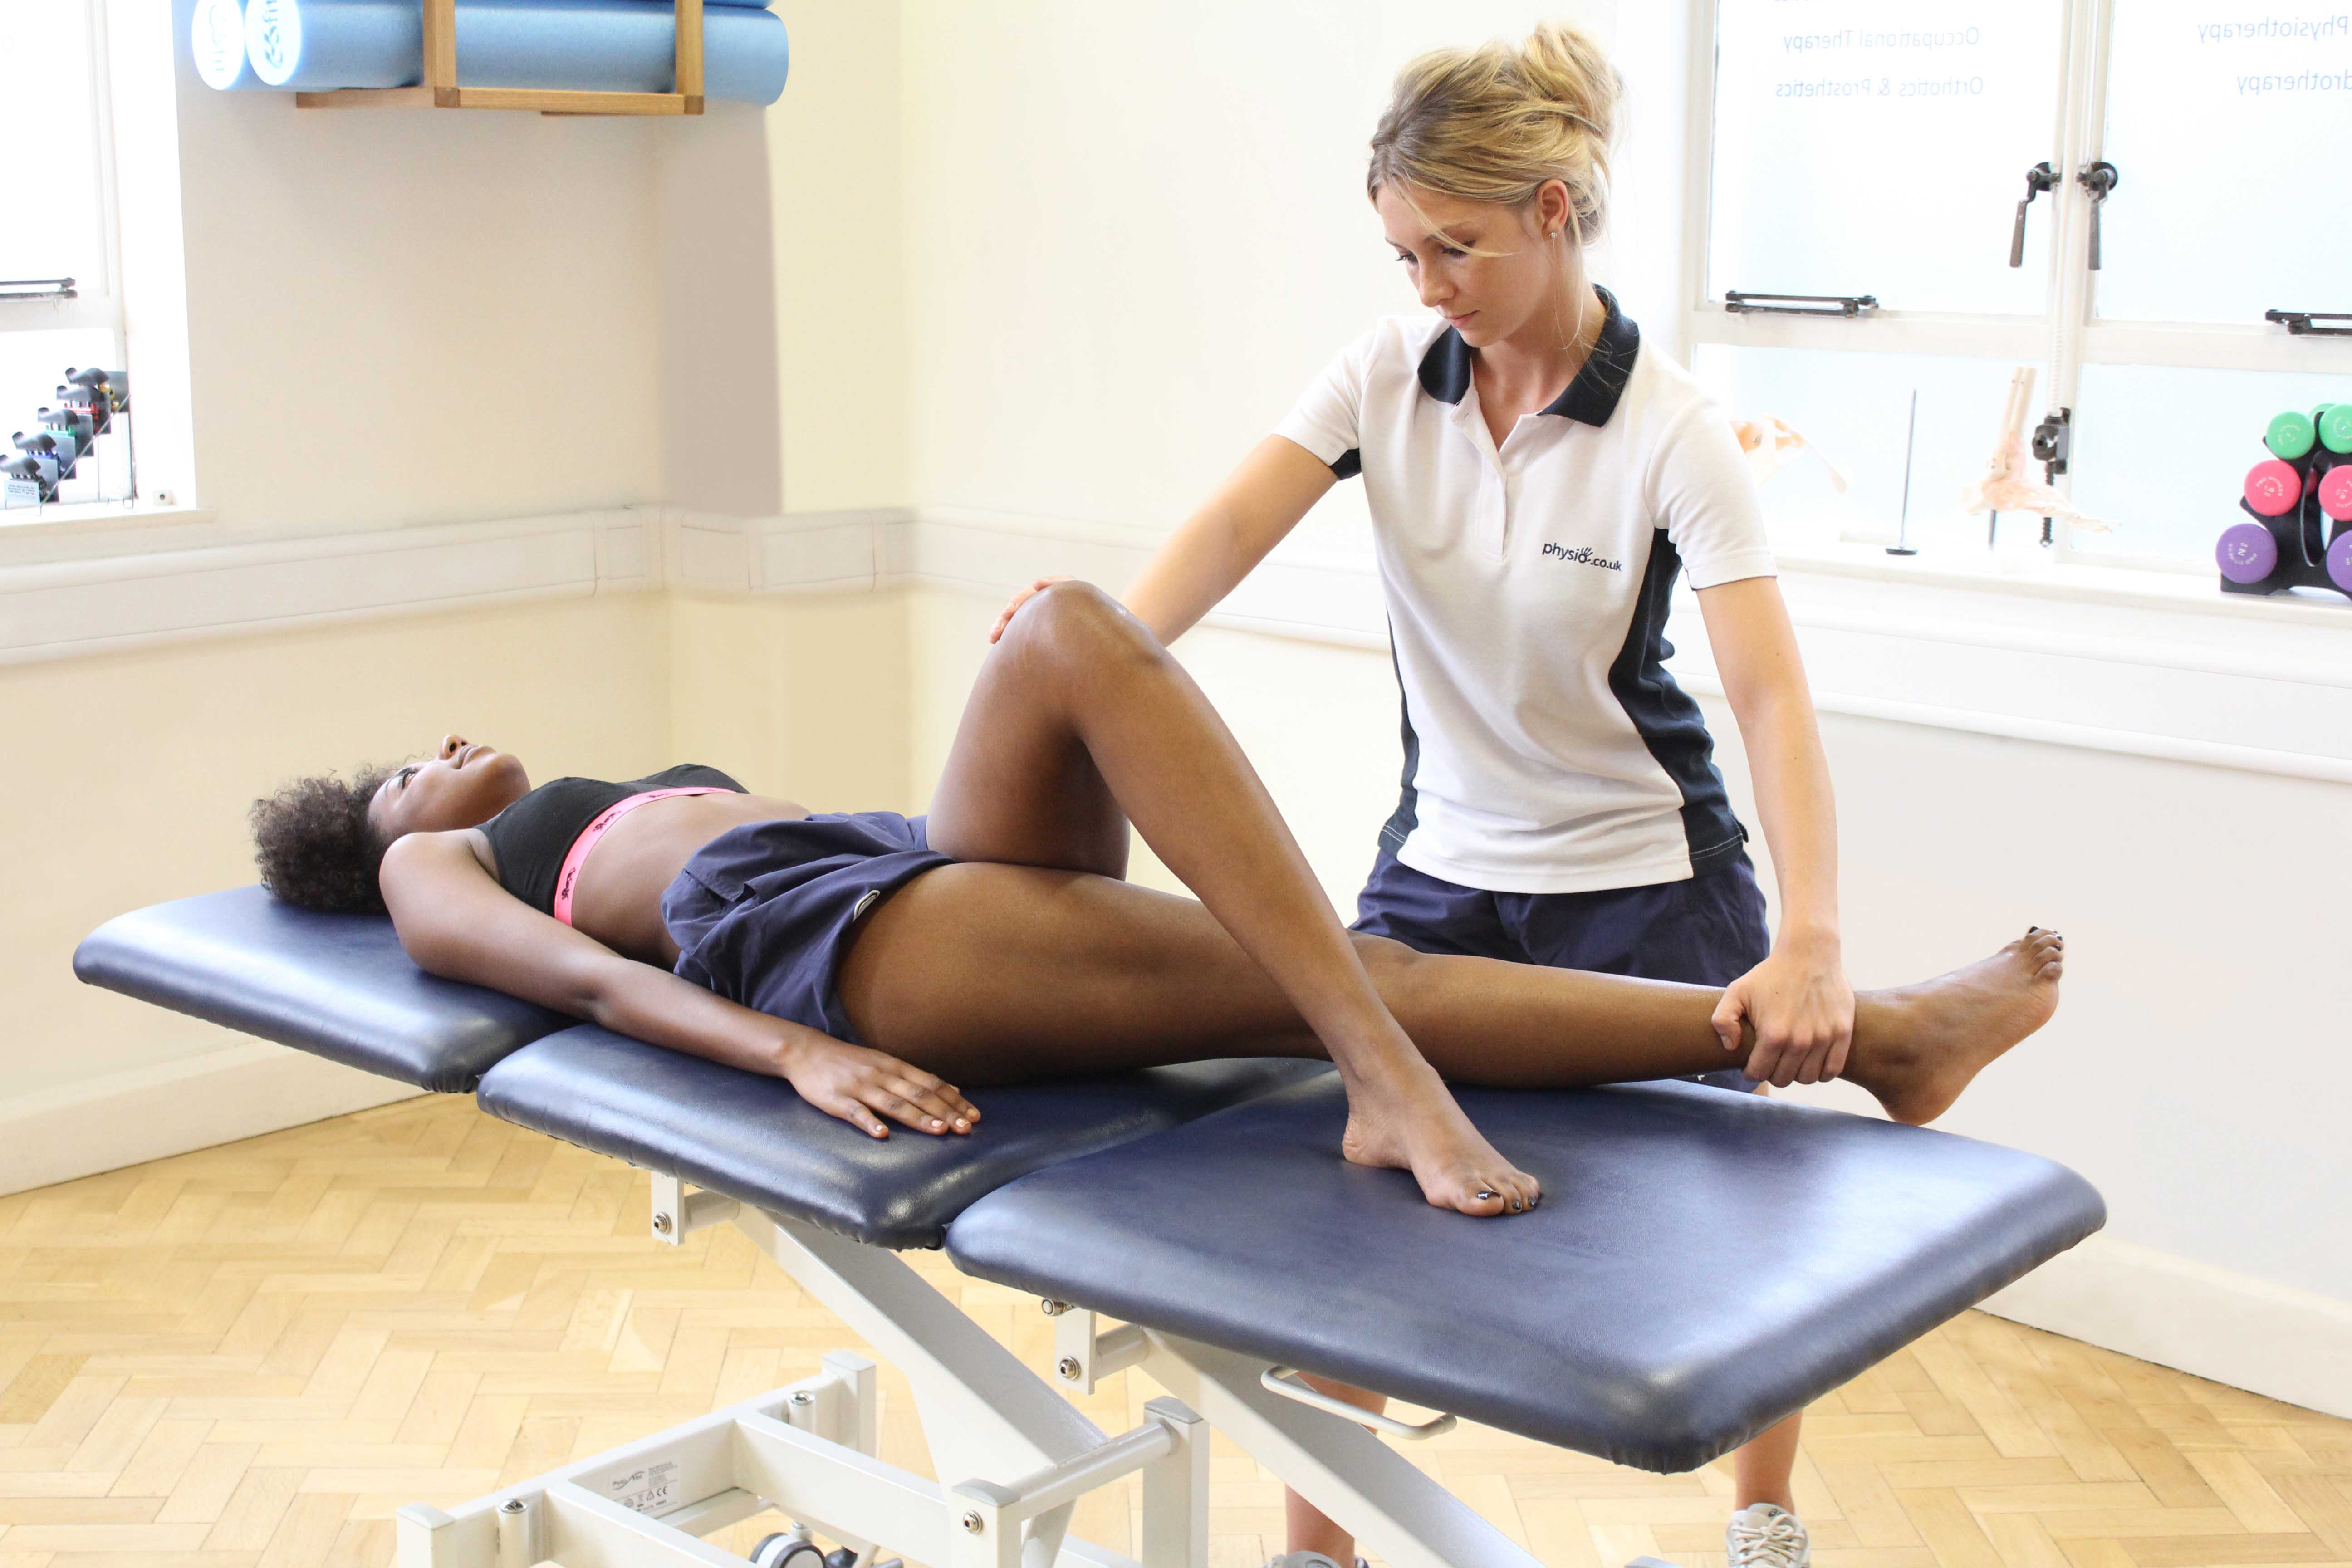 Soft tissue massage of the quadricep muscles by a specialist MSK therapist